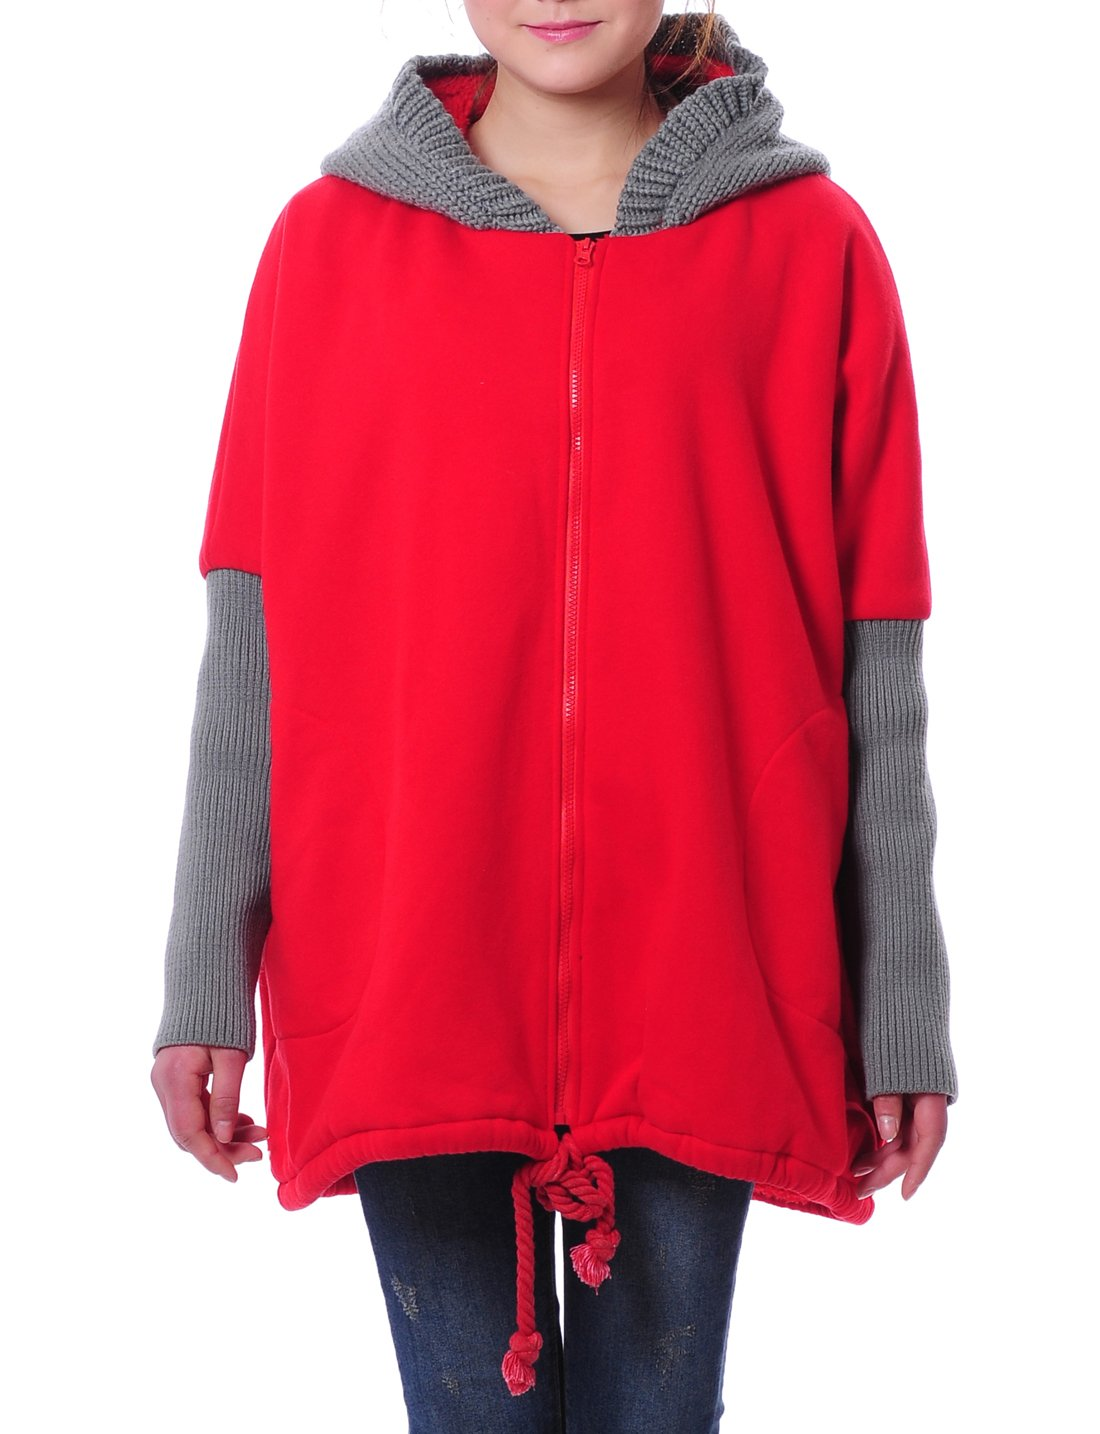 2 Colors Patchwork Hooded Women Winter Top Blouse Size Us 30w Aolo-486 (Red/grey)